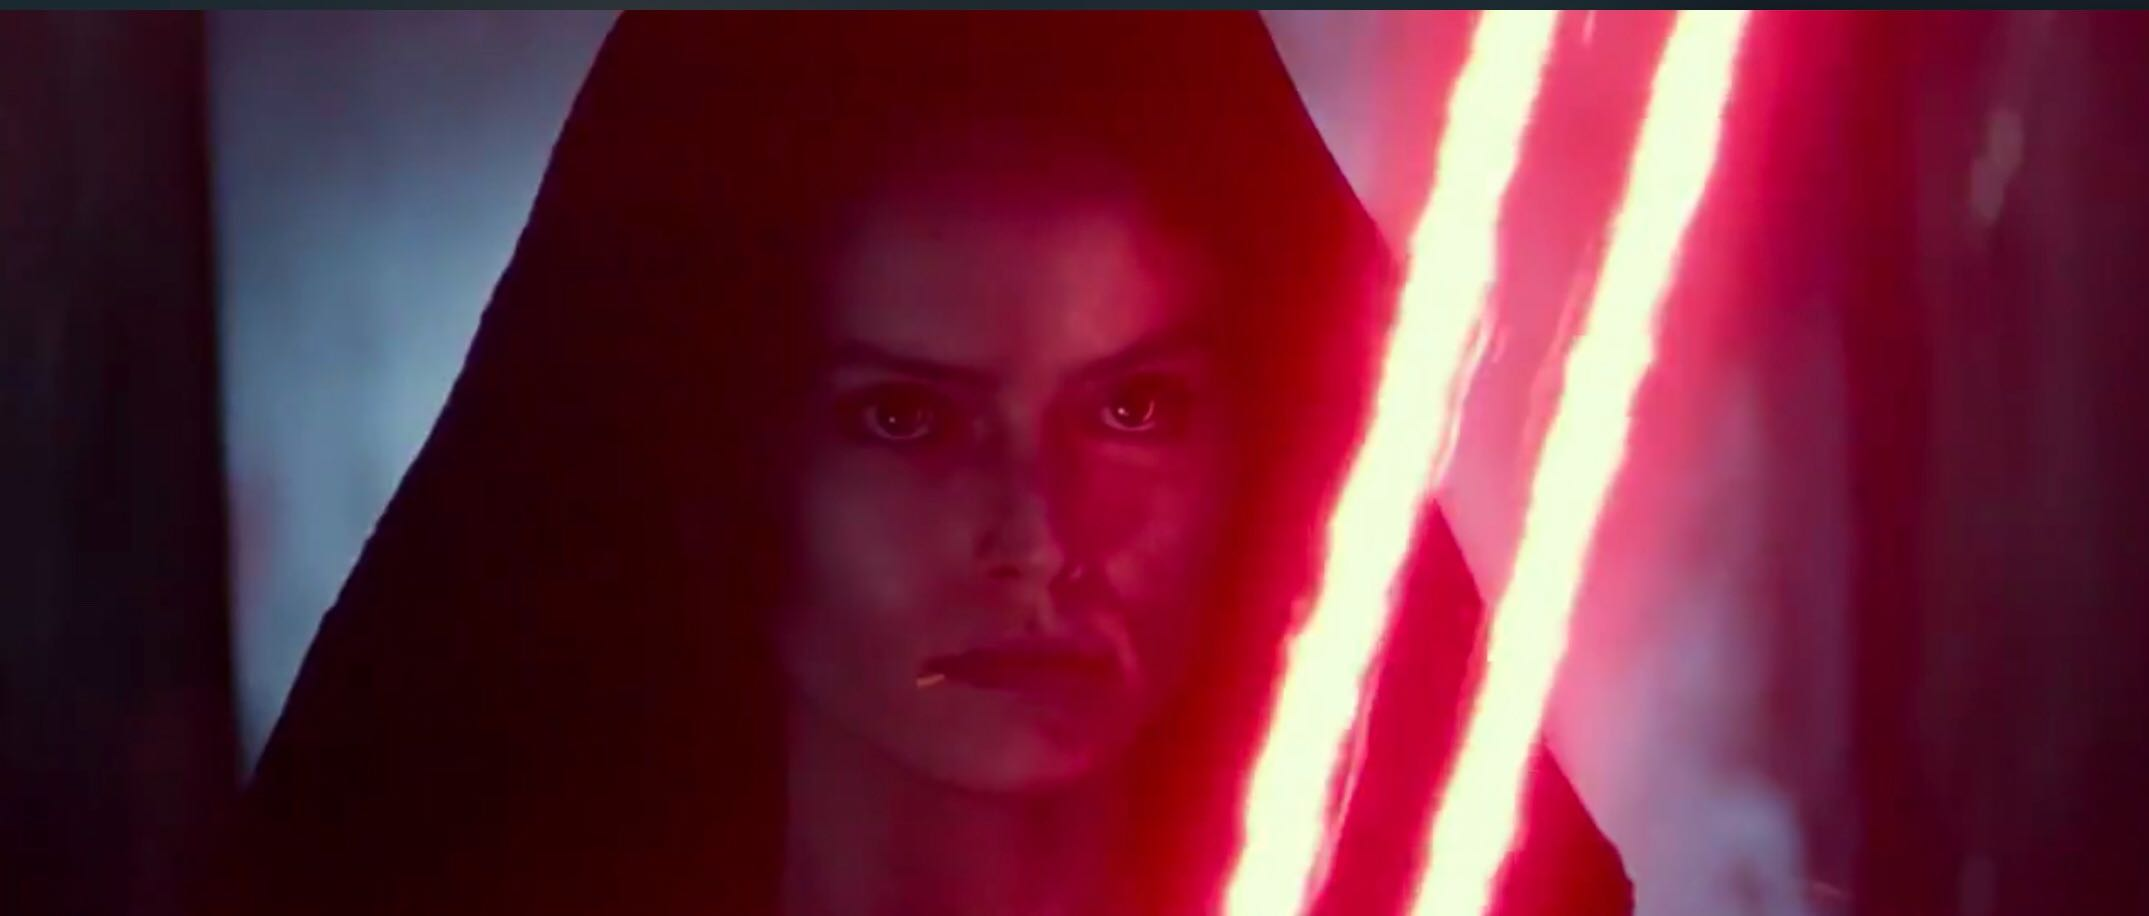 Watch the new D23 Star Wars: The Rise of Skywalker trailer